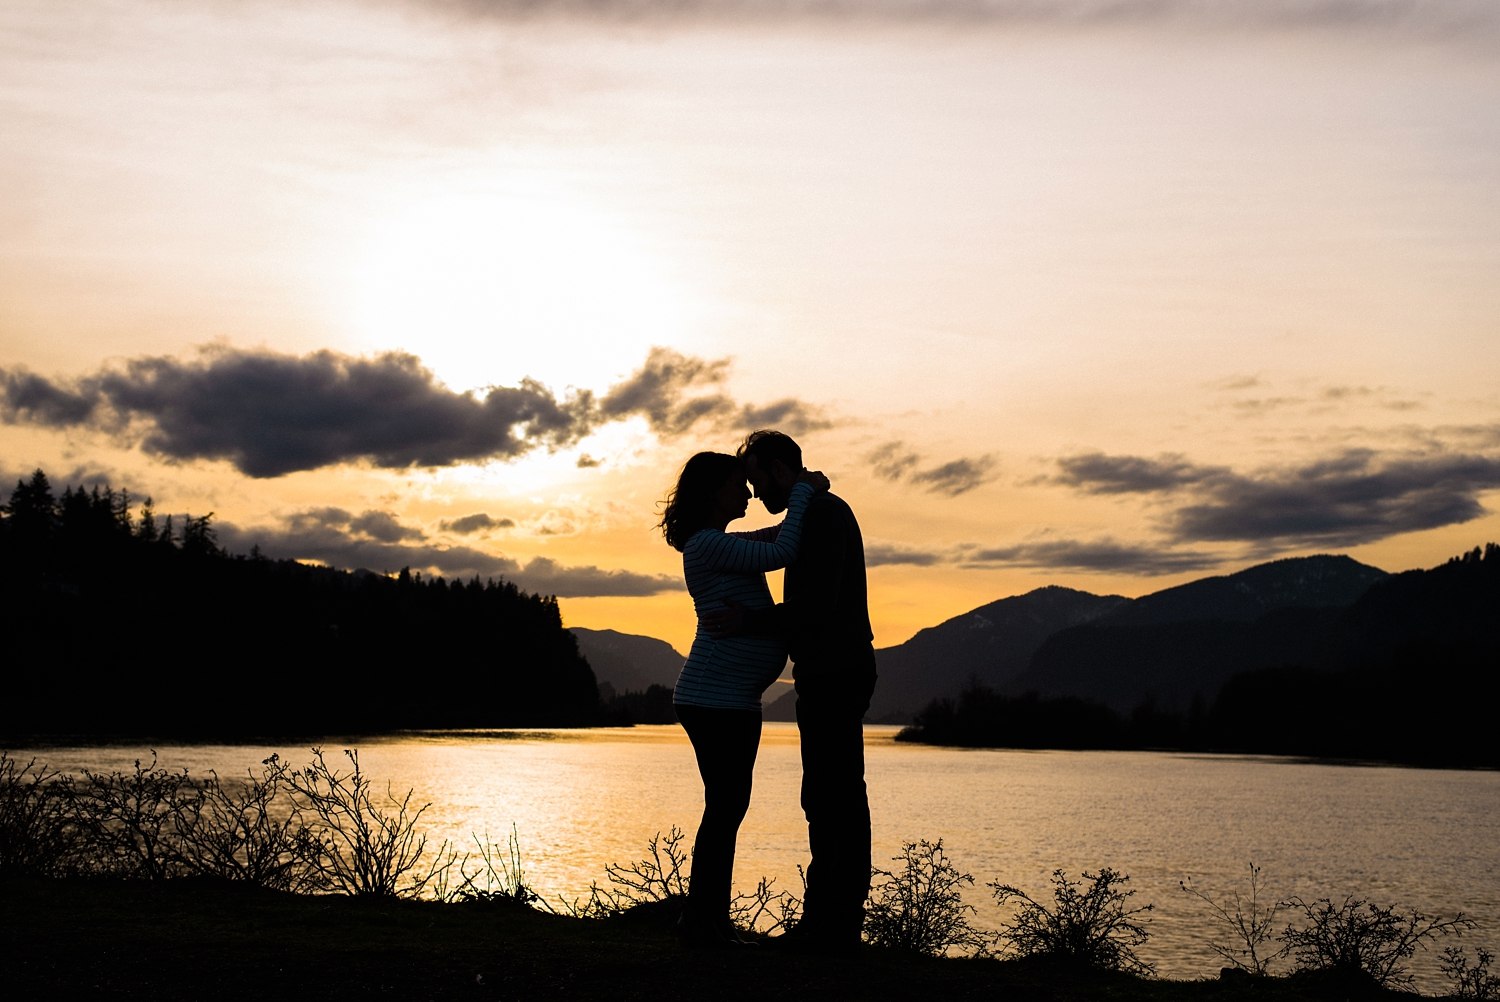 hood-river-maternity-photos-silhouette-columbia-river-gorge-shelley-marie-photo-092_cr.jpg